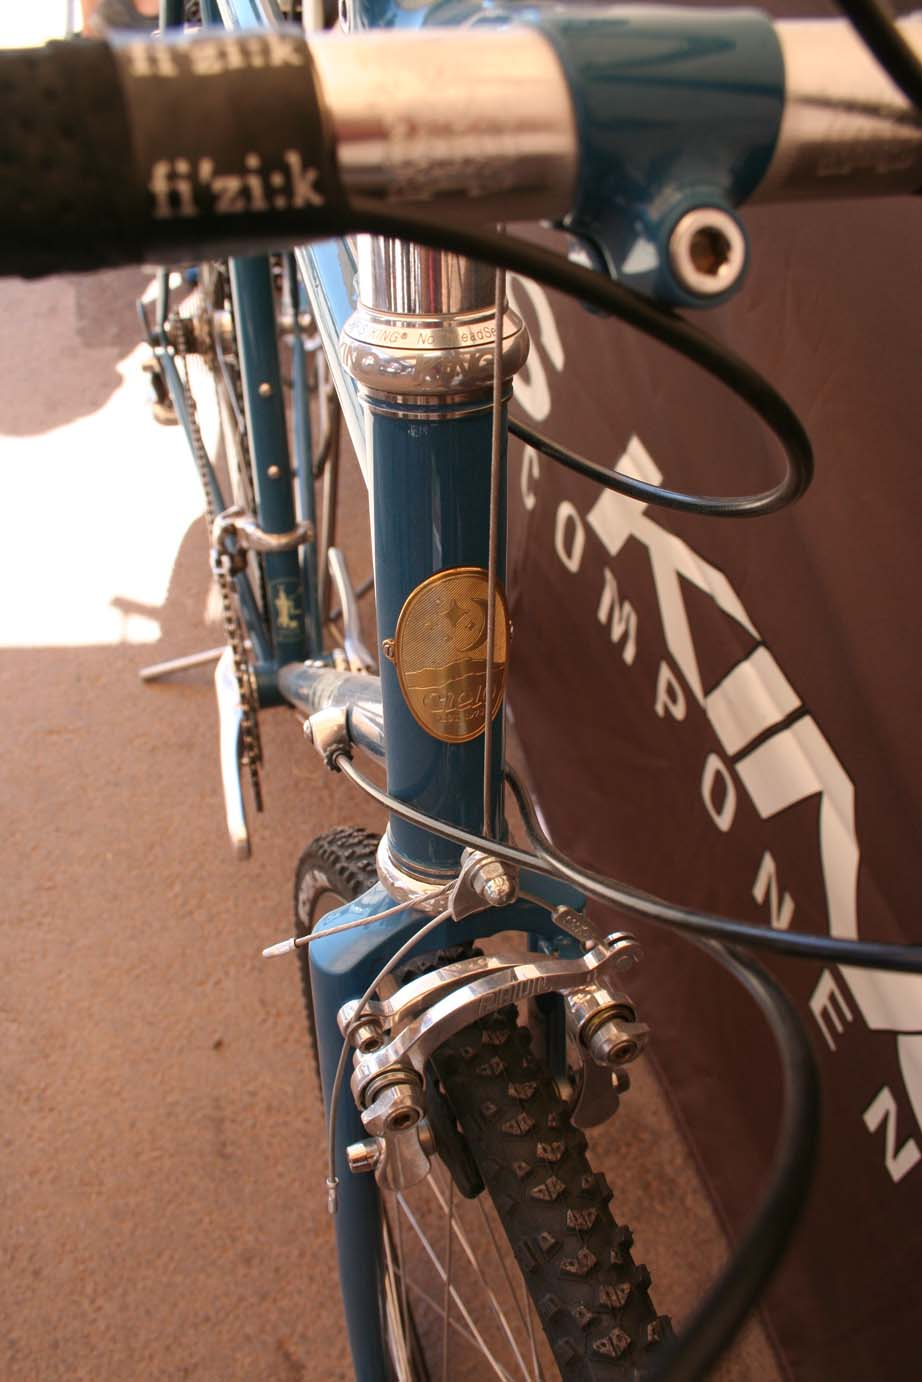 This model featured Paul centerpull brakes with lots of clearance.